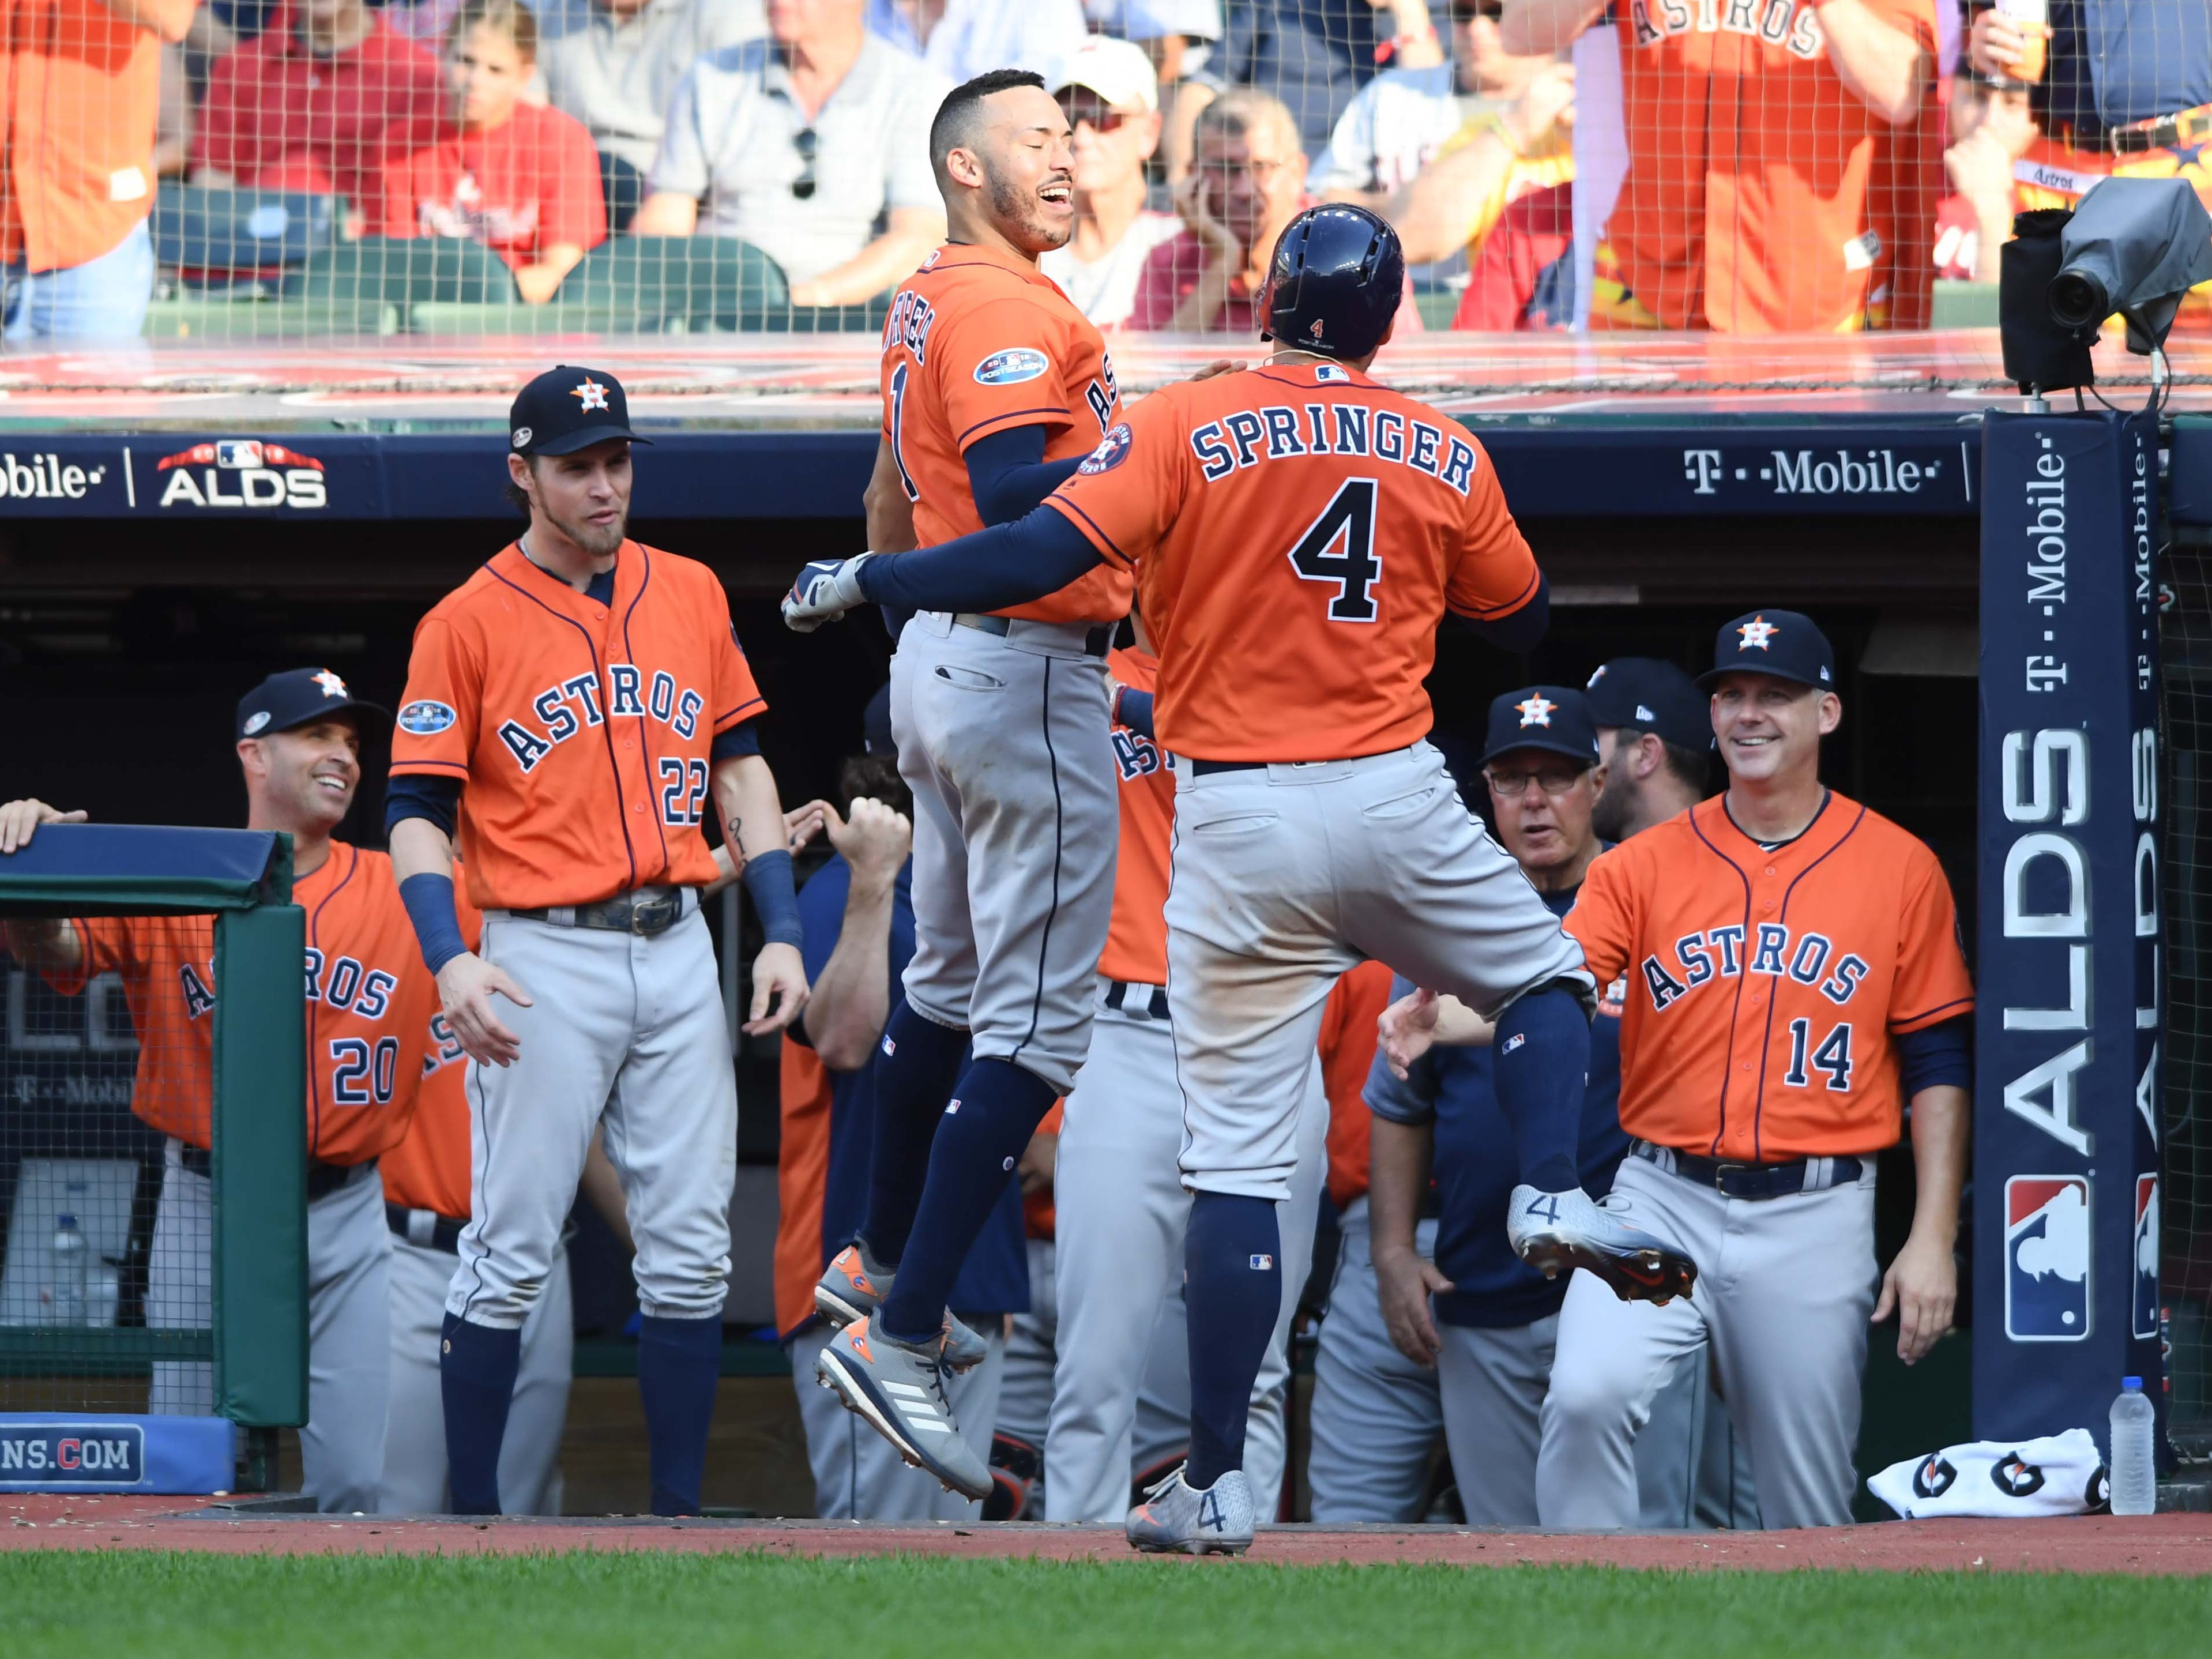 ALDS Game 3: George Springer celebrates his eighth-inning home run.